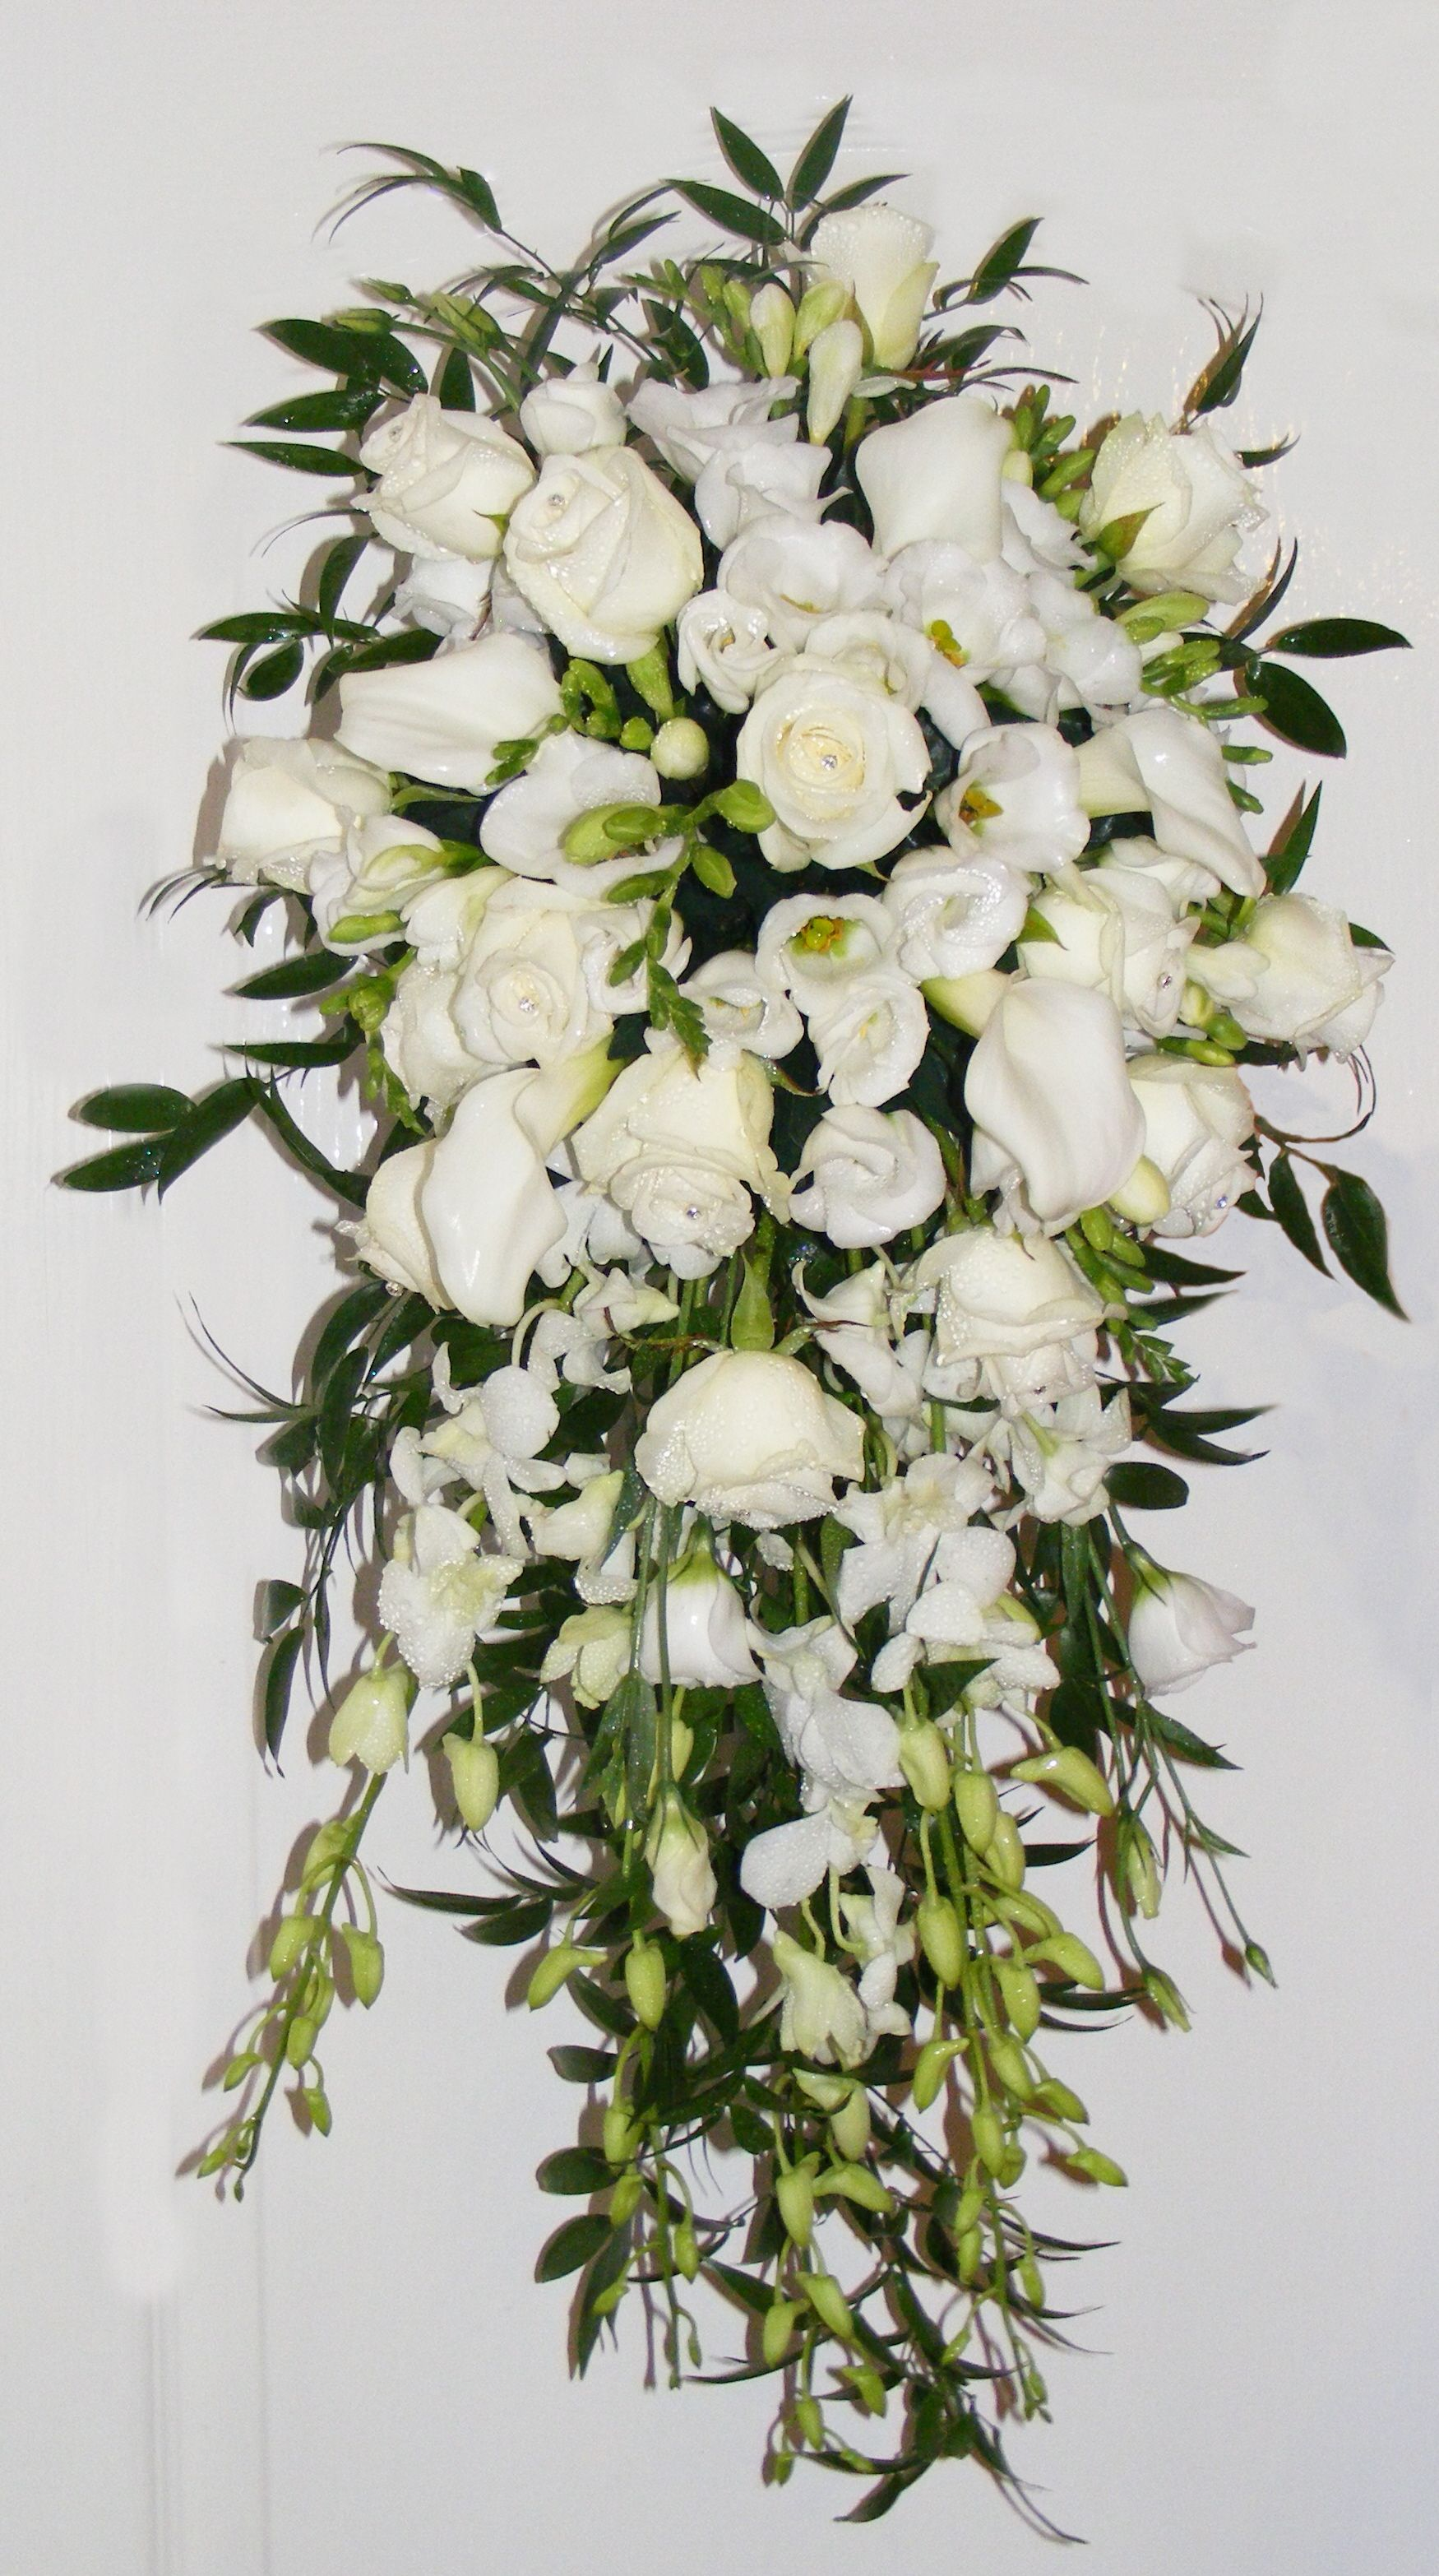 Fresh Flower Bridal Bouquet Singapore Orchids Roses And Lisianthus